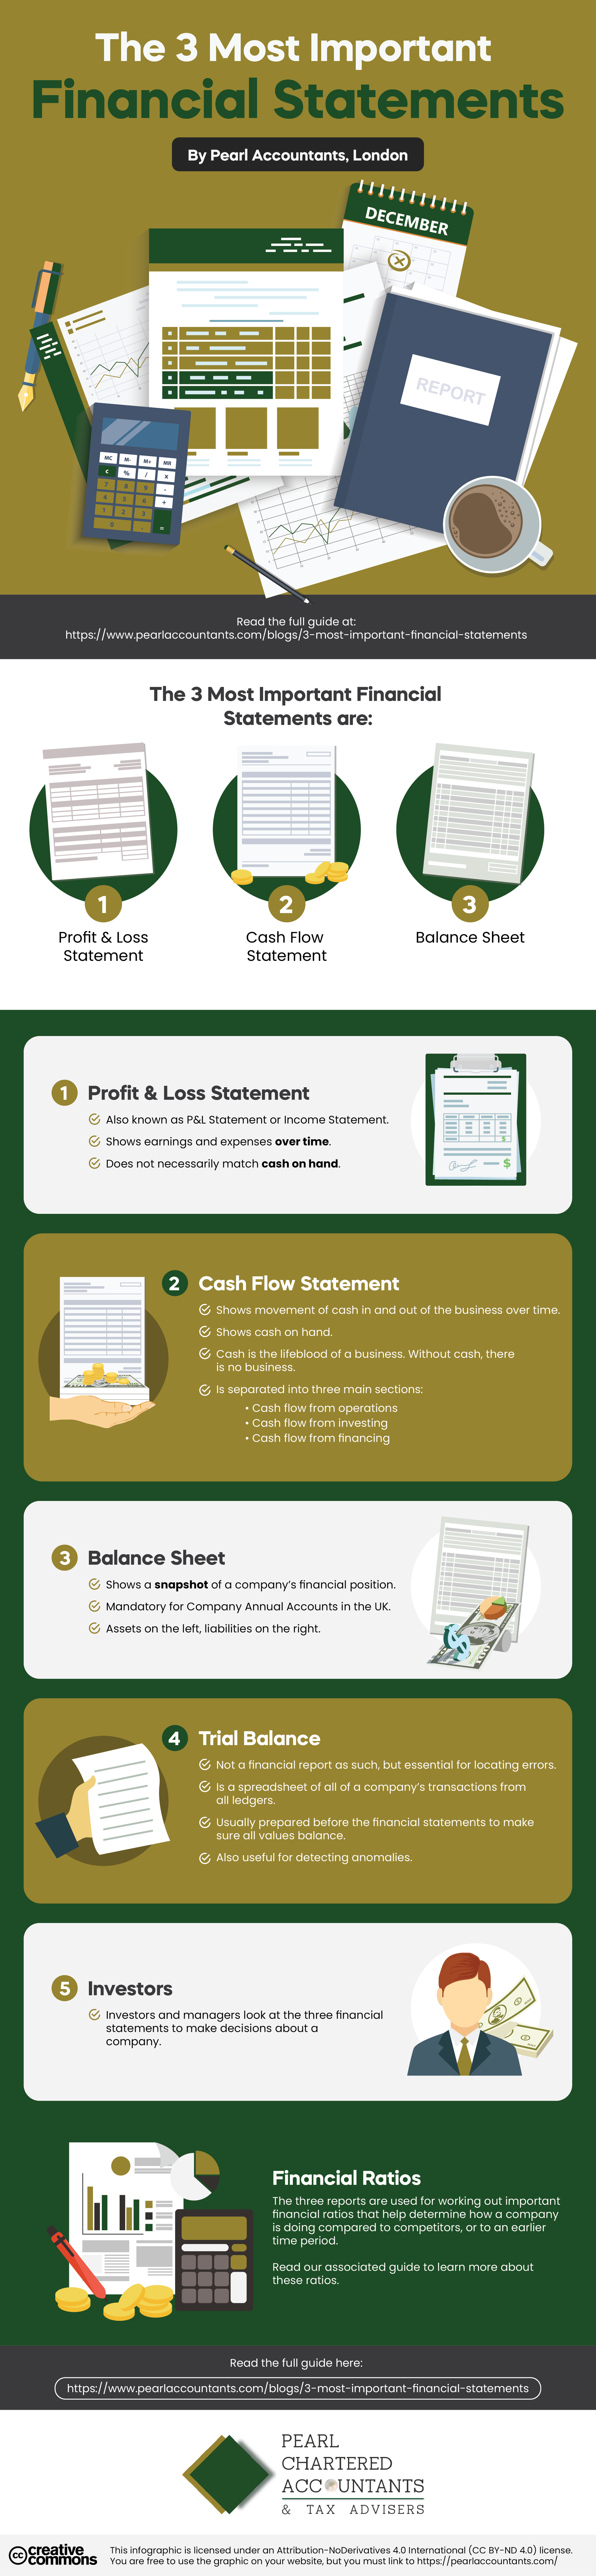 The 3 Most Important Financial Statements: Everything You Need to Know